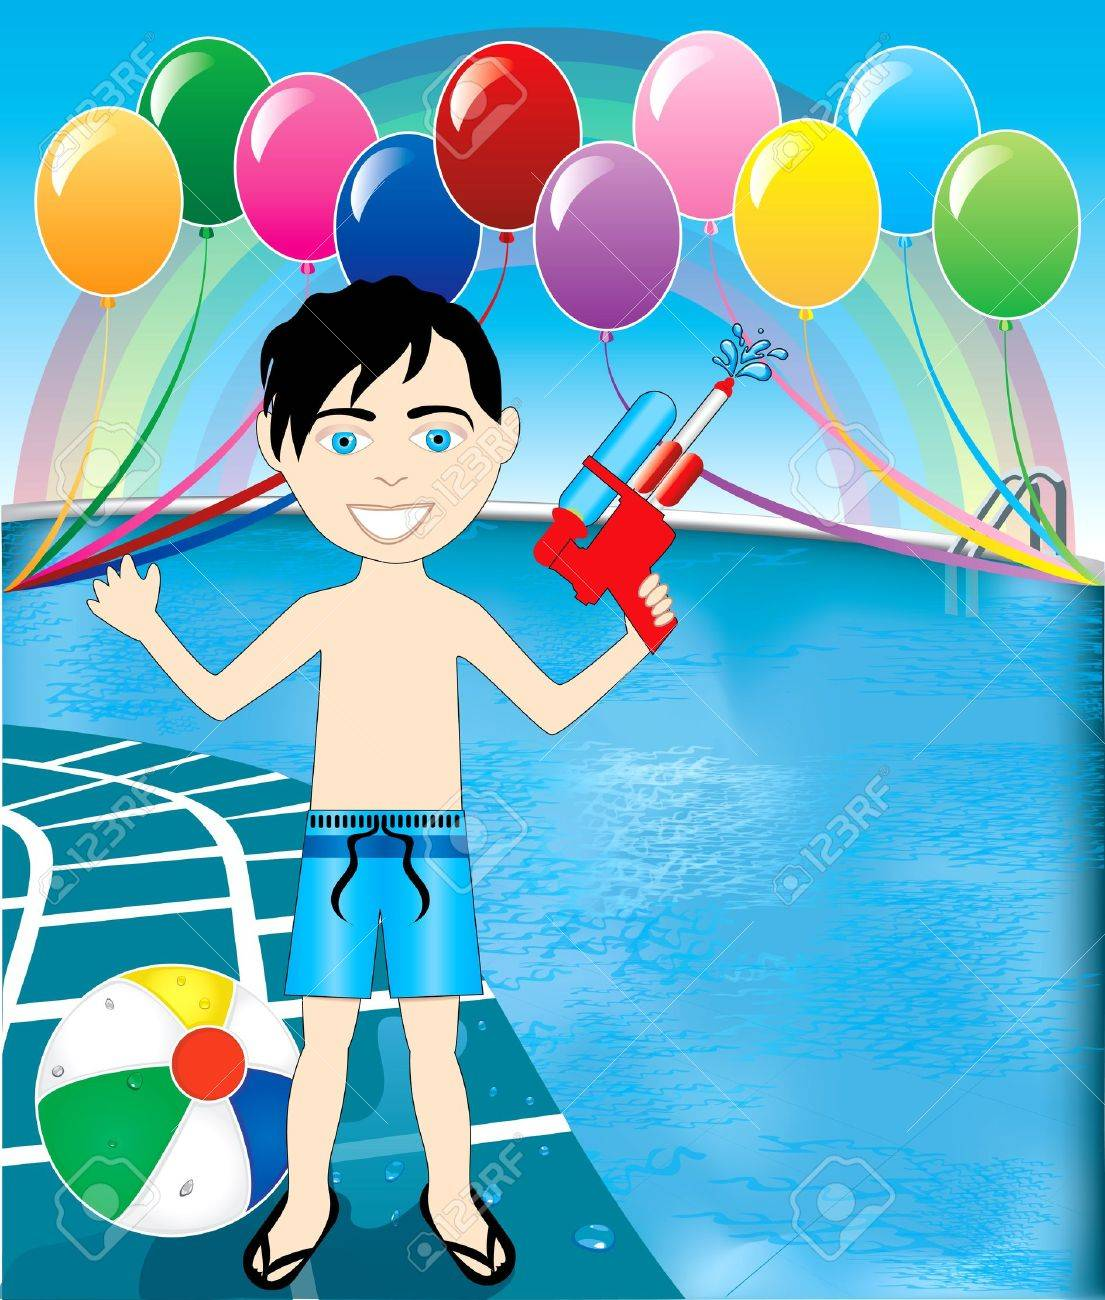 Vector Illustration of watergun boy at pool party with balloons and beach ball. Stock Vector - 13708047